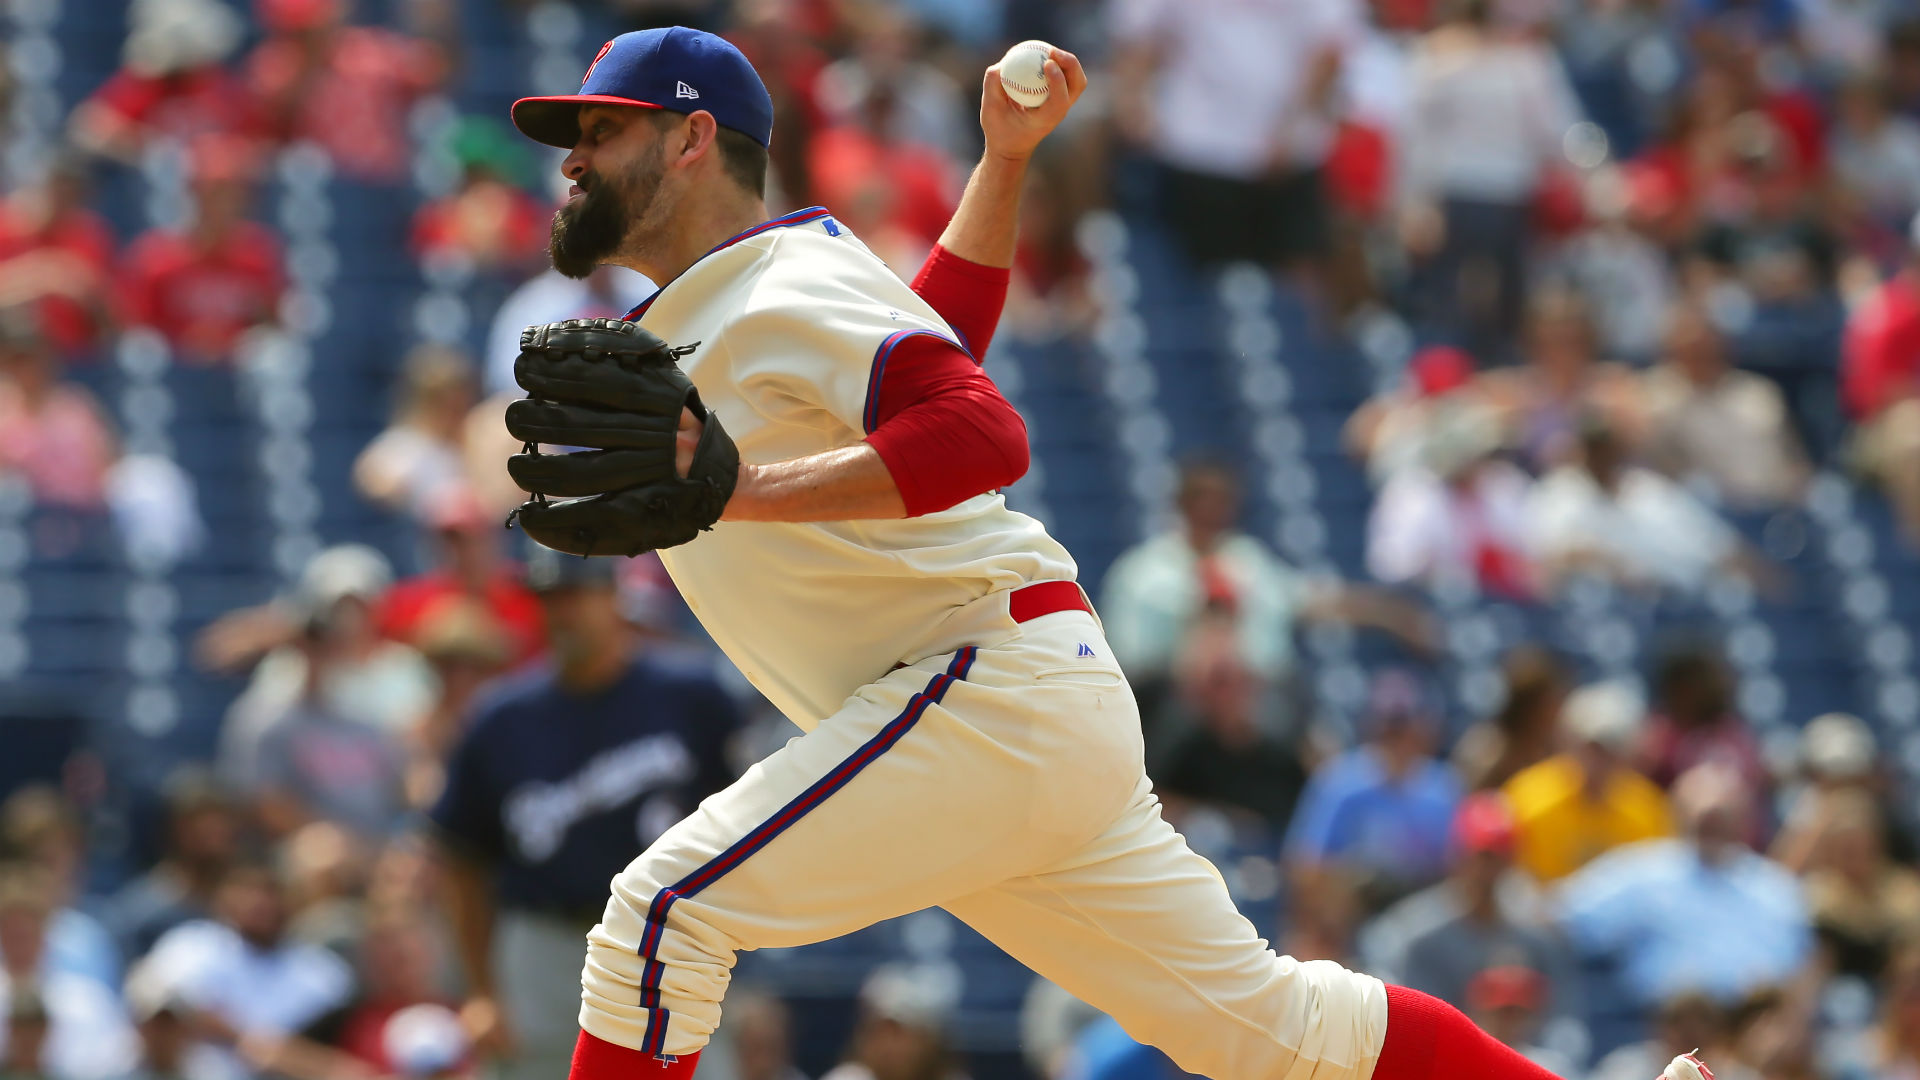 Pat Neshek to the Rockies was a much needed move